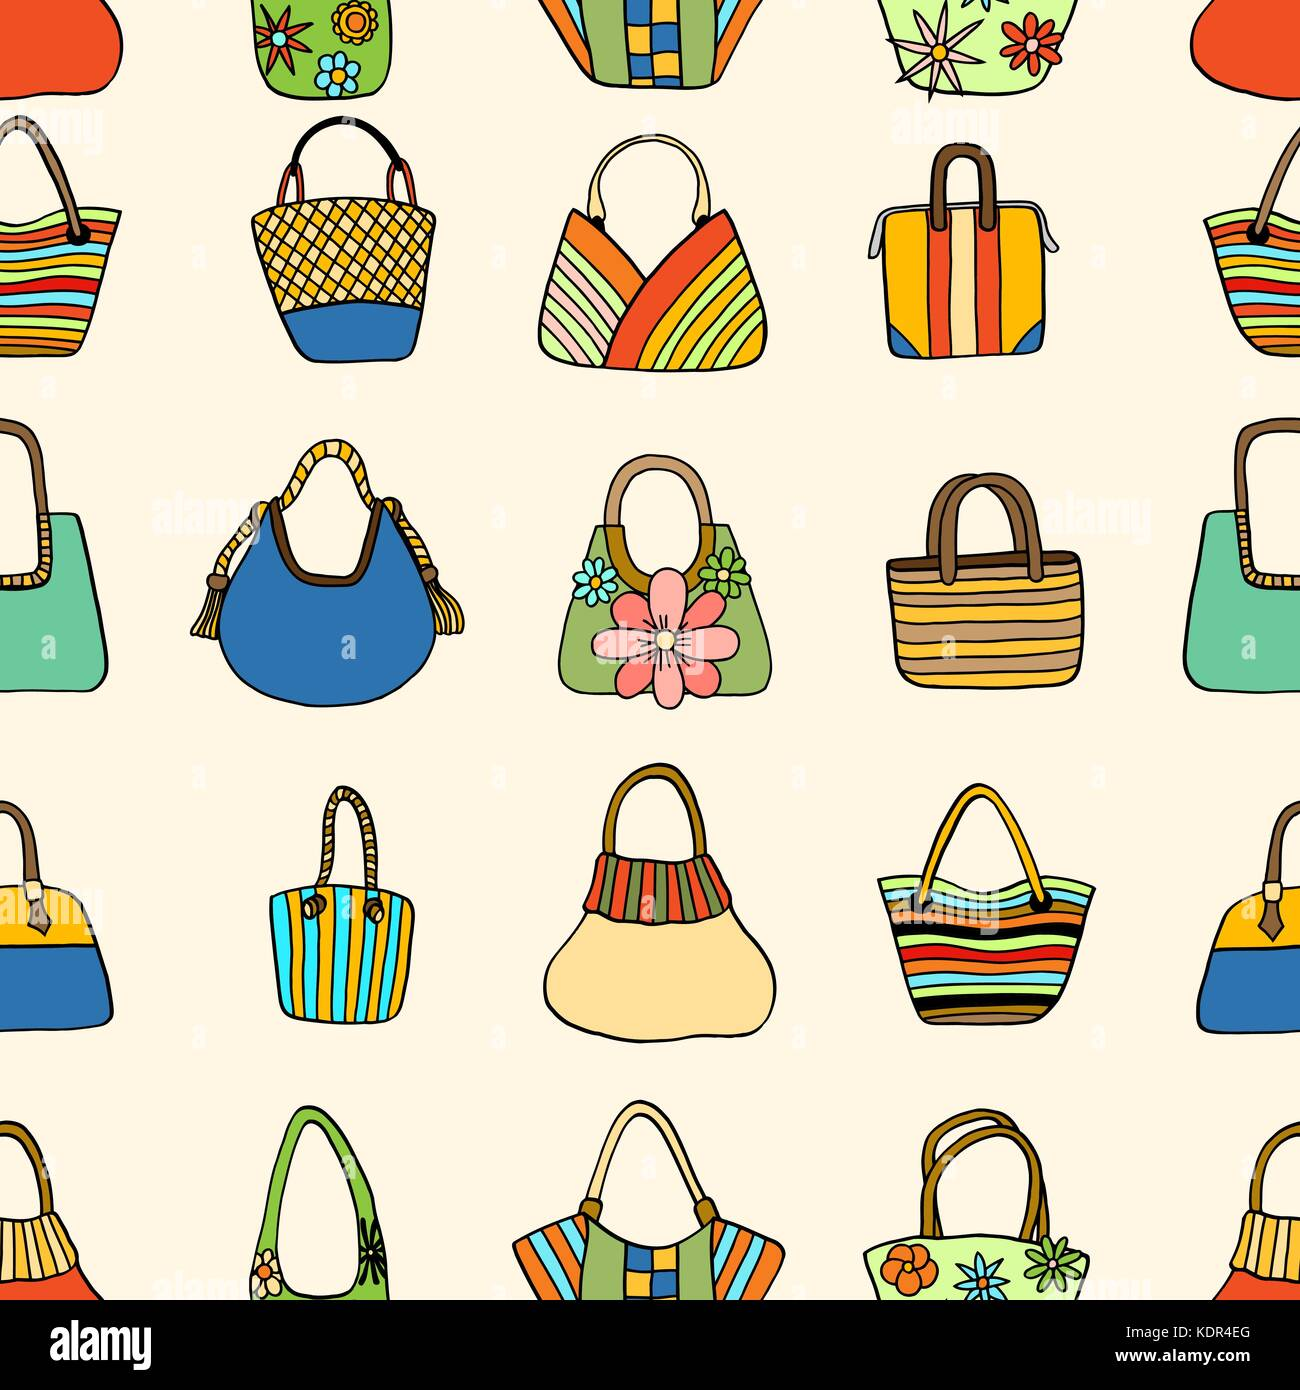 fff4ec8ad6 Vector seamless pattern with hand drawn colored Lady handbag. Pattern on  the theme of summer fashion. Background for use in design